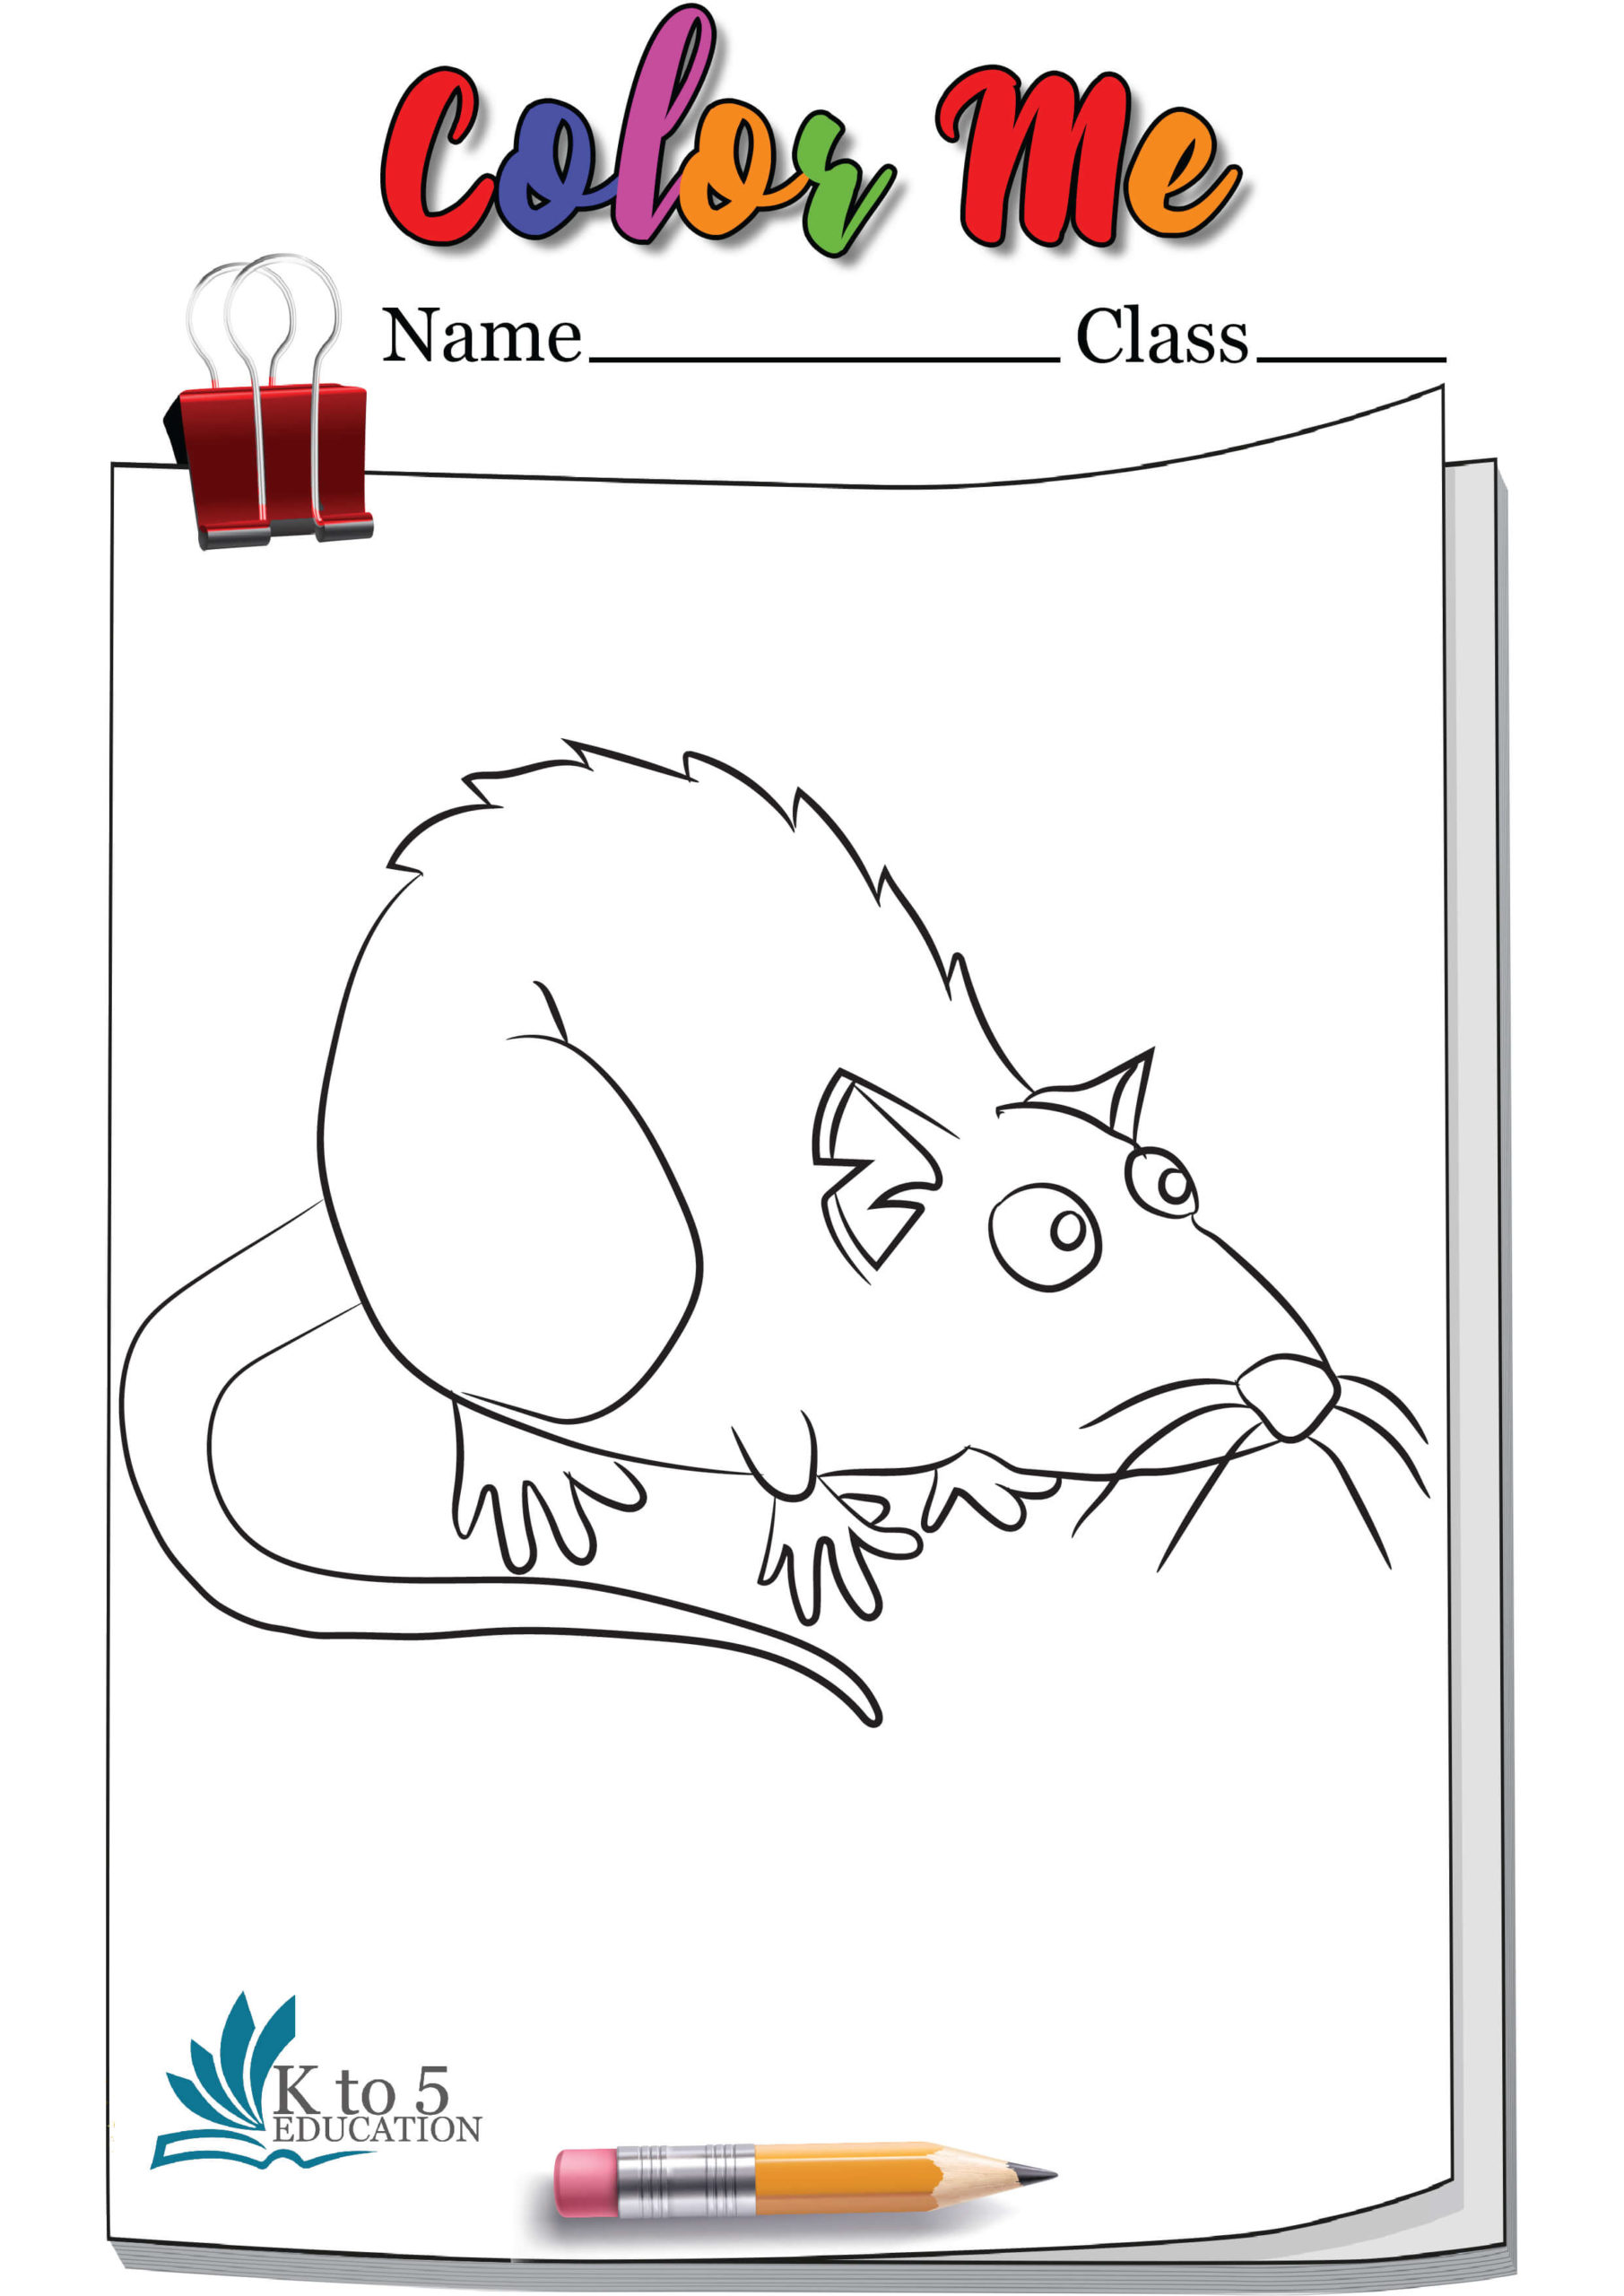 Rat ready to jump coloring page worksheet